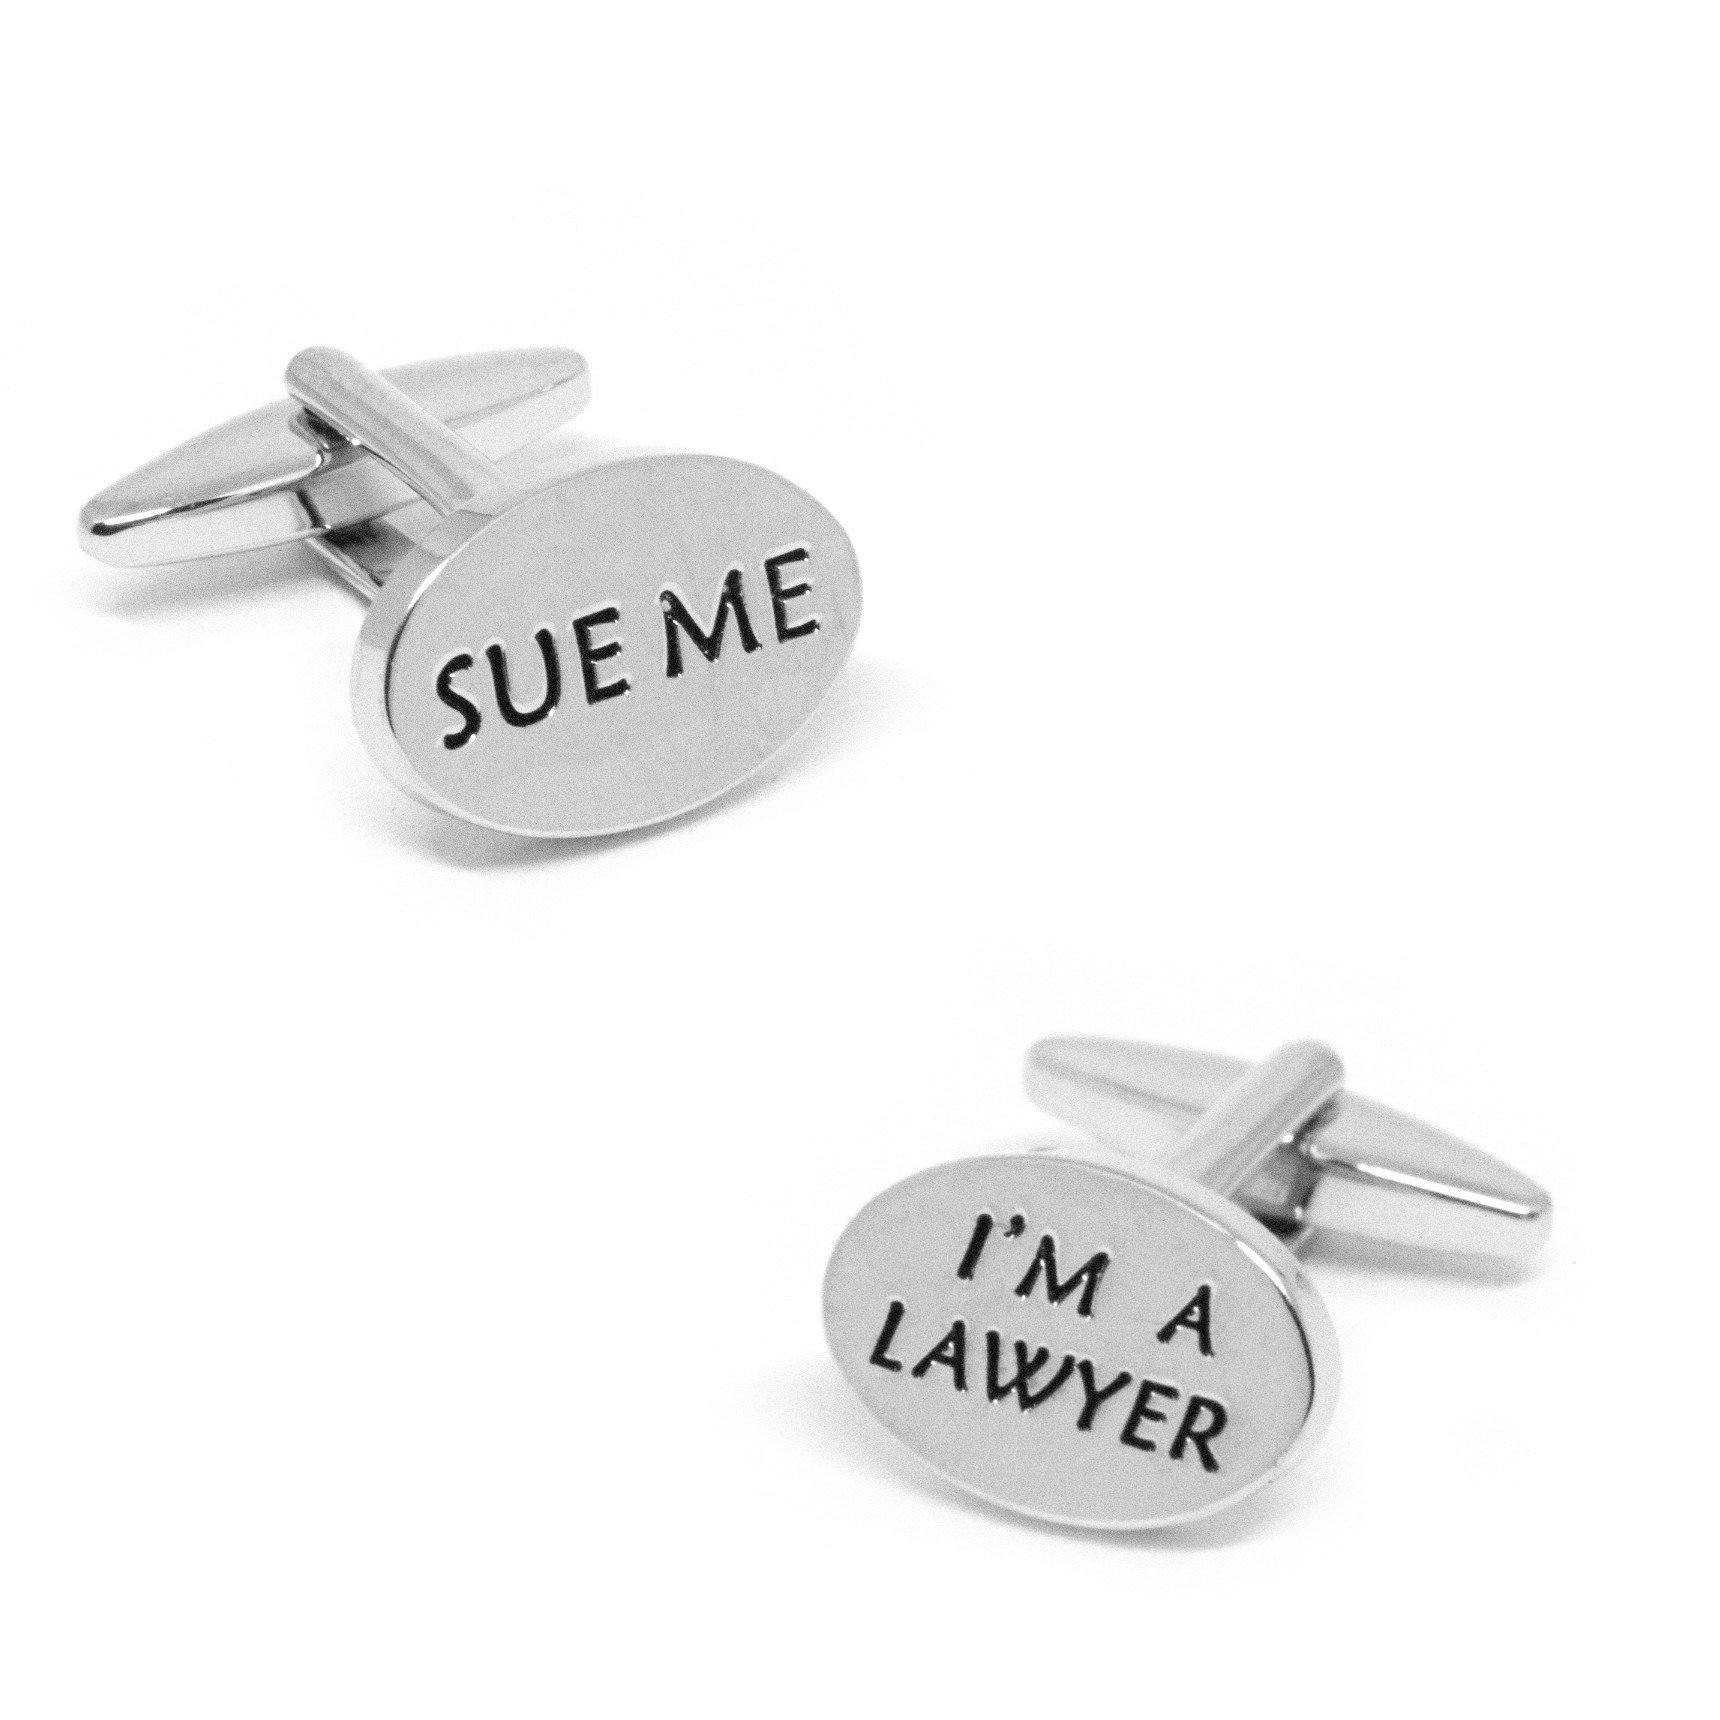 """Sue Me, I'm a Lawyer"" Cufflinks, Novelty Cufflinks, Cuffed.com.au, CL9194, $29.00"